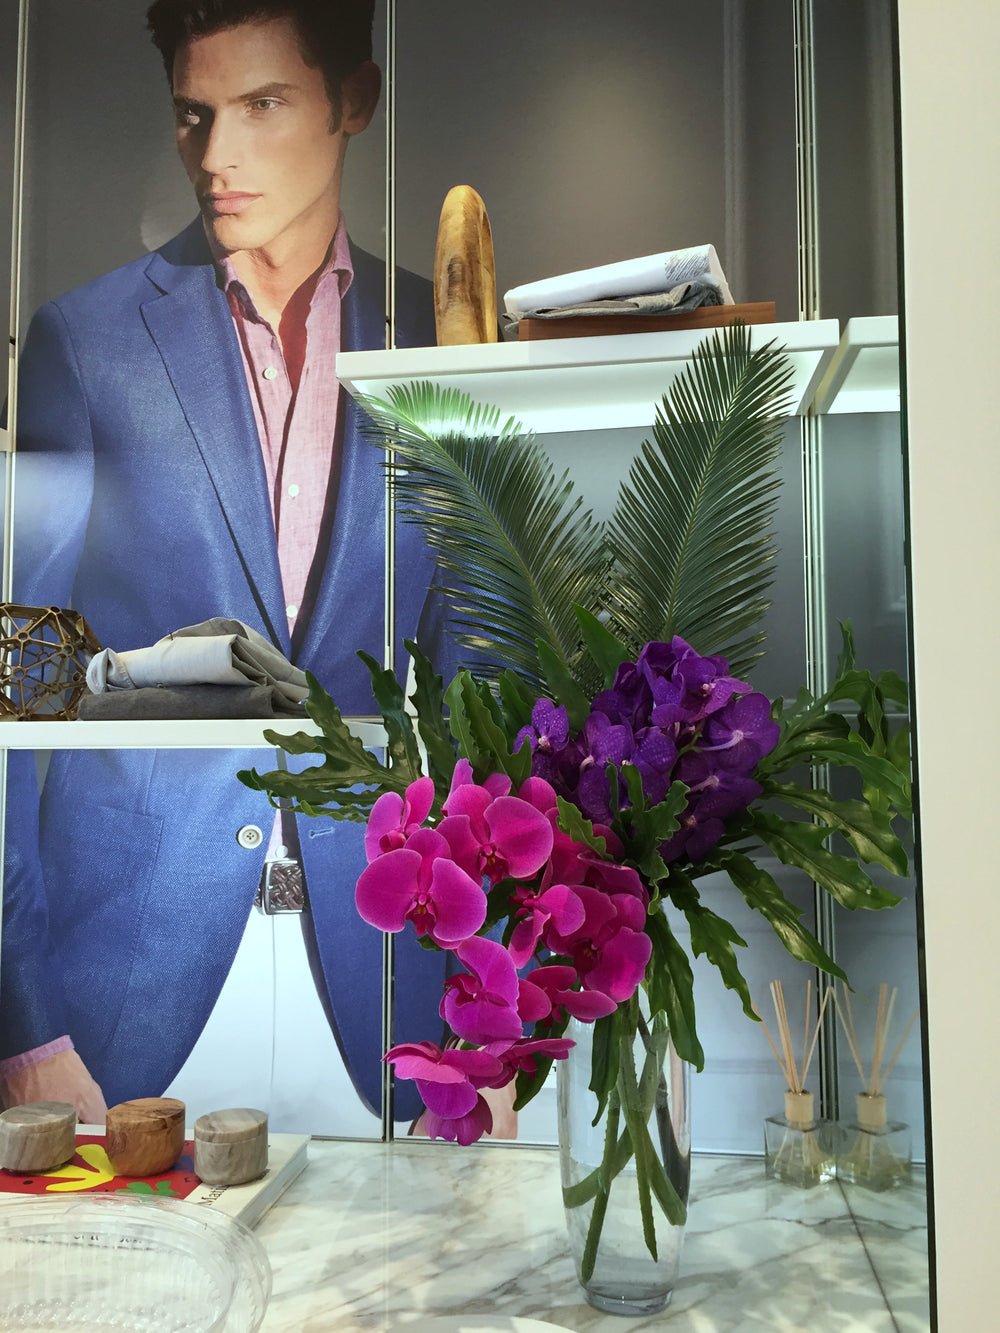 Vibrant Showroom Florist for Men's Fashion Jack Victor NYC by Anissa Rae Flowers